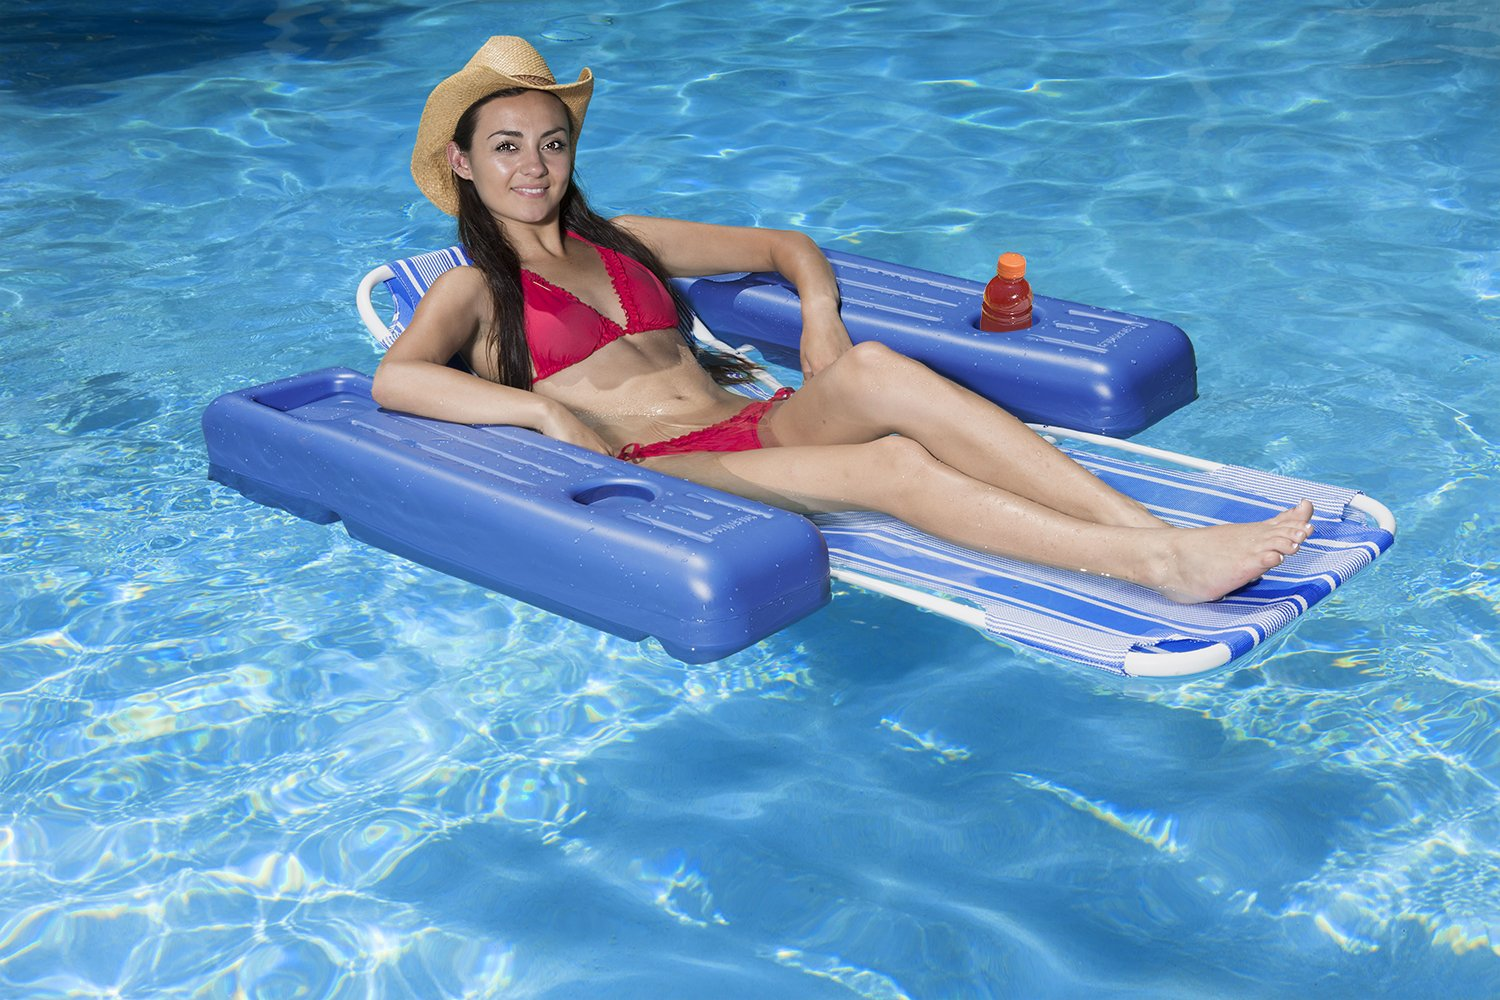 Poolmaster Swimming Pool Floating Chaise Lounge, Caribbean, Blue Stripe